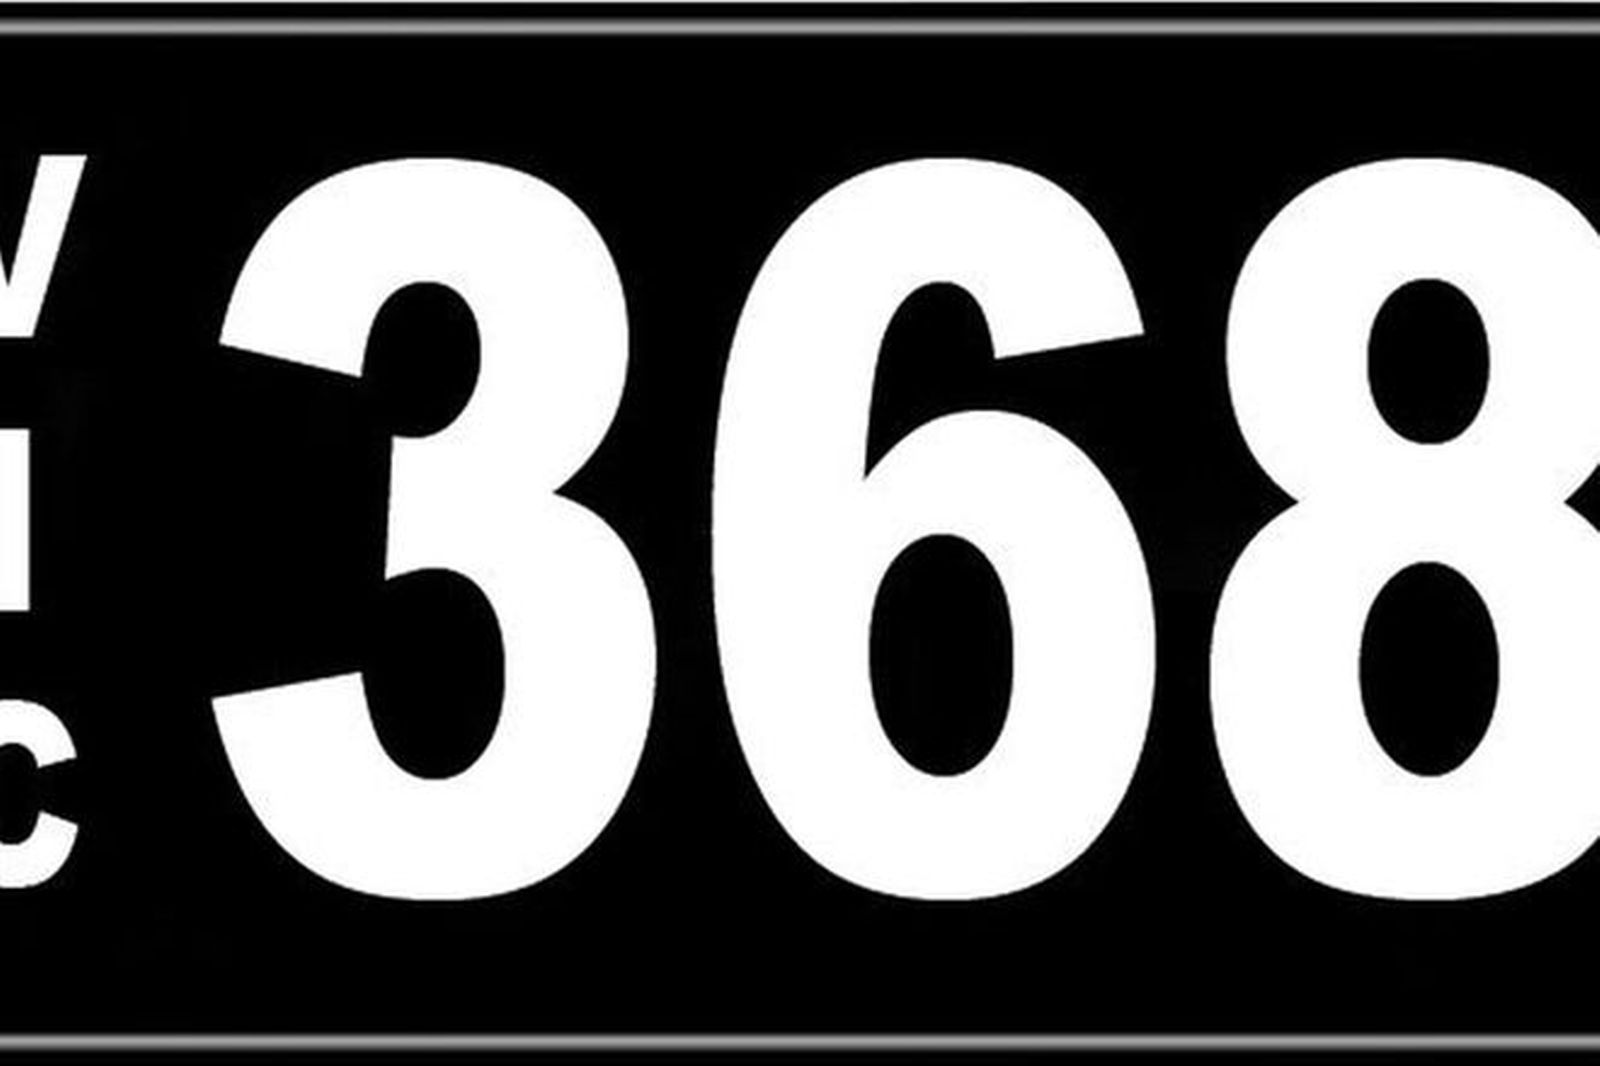 Number Plates - Victorian Numerical Number Plates - '368'